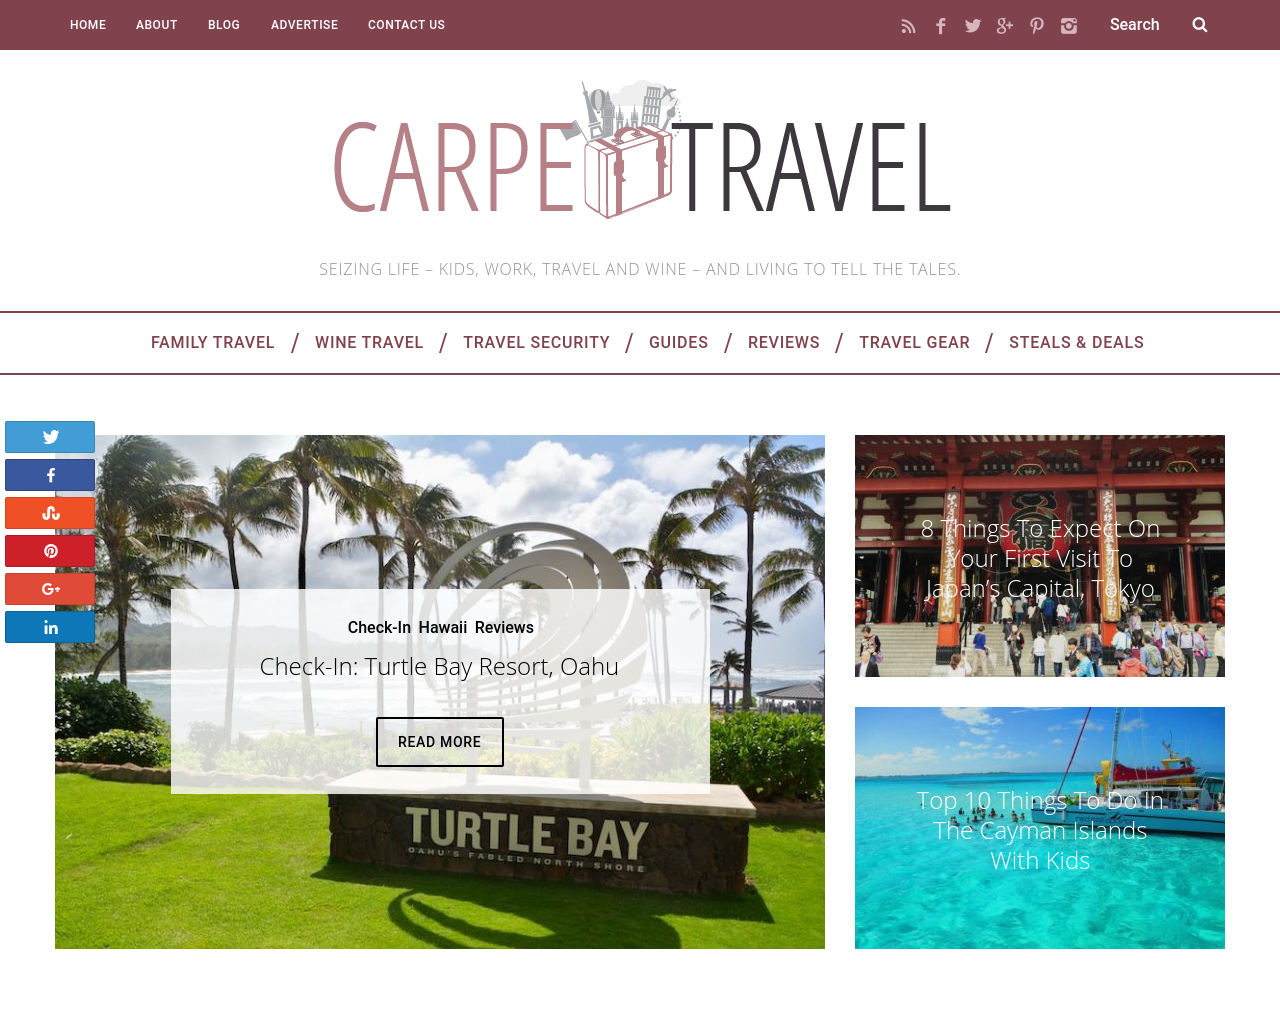 Carpe-Travel-Advertising-Reviews-Pricing